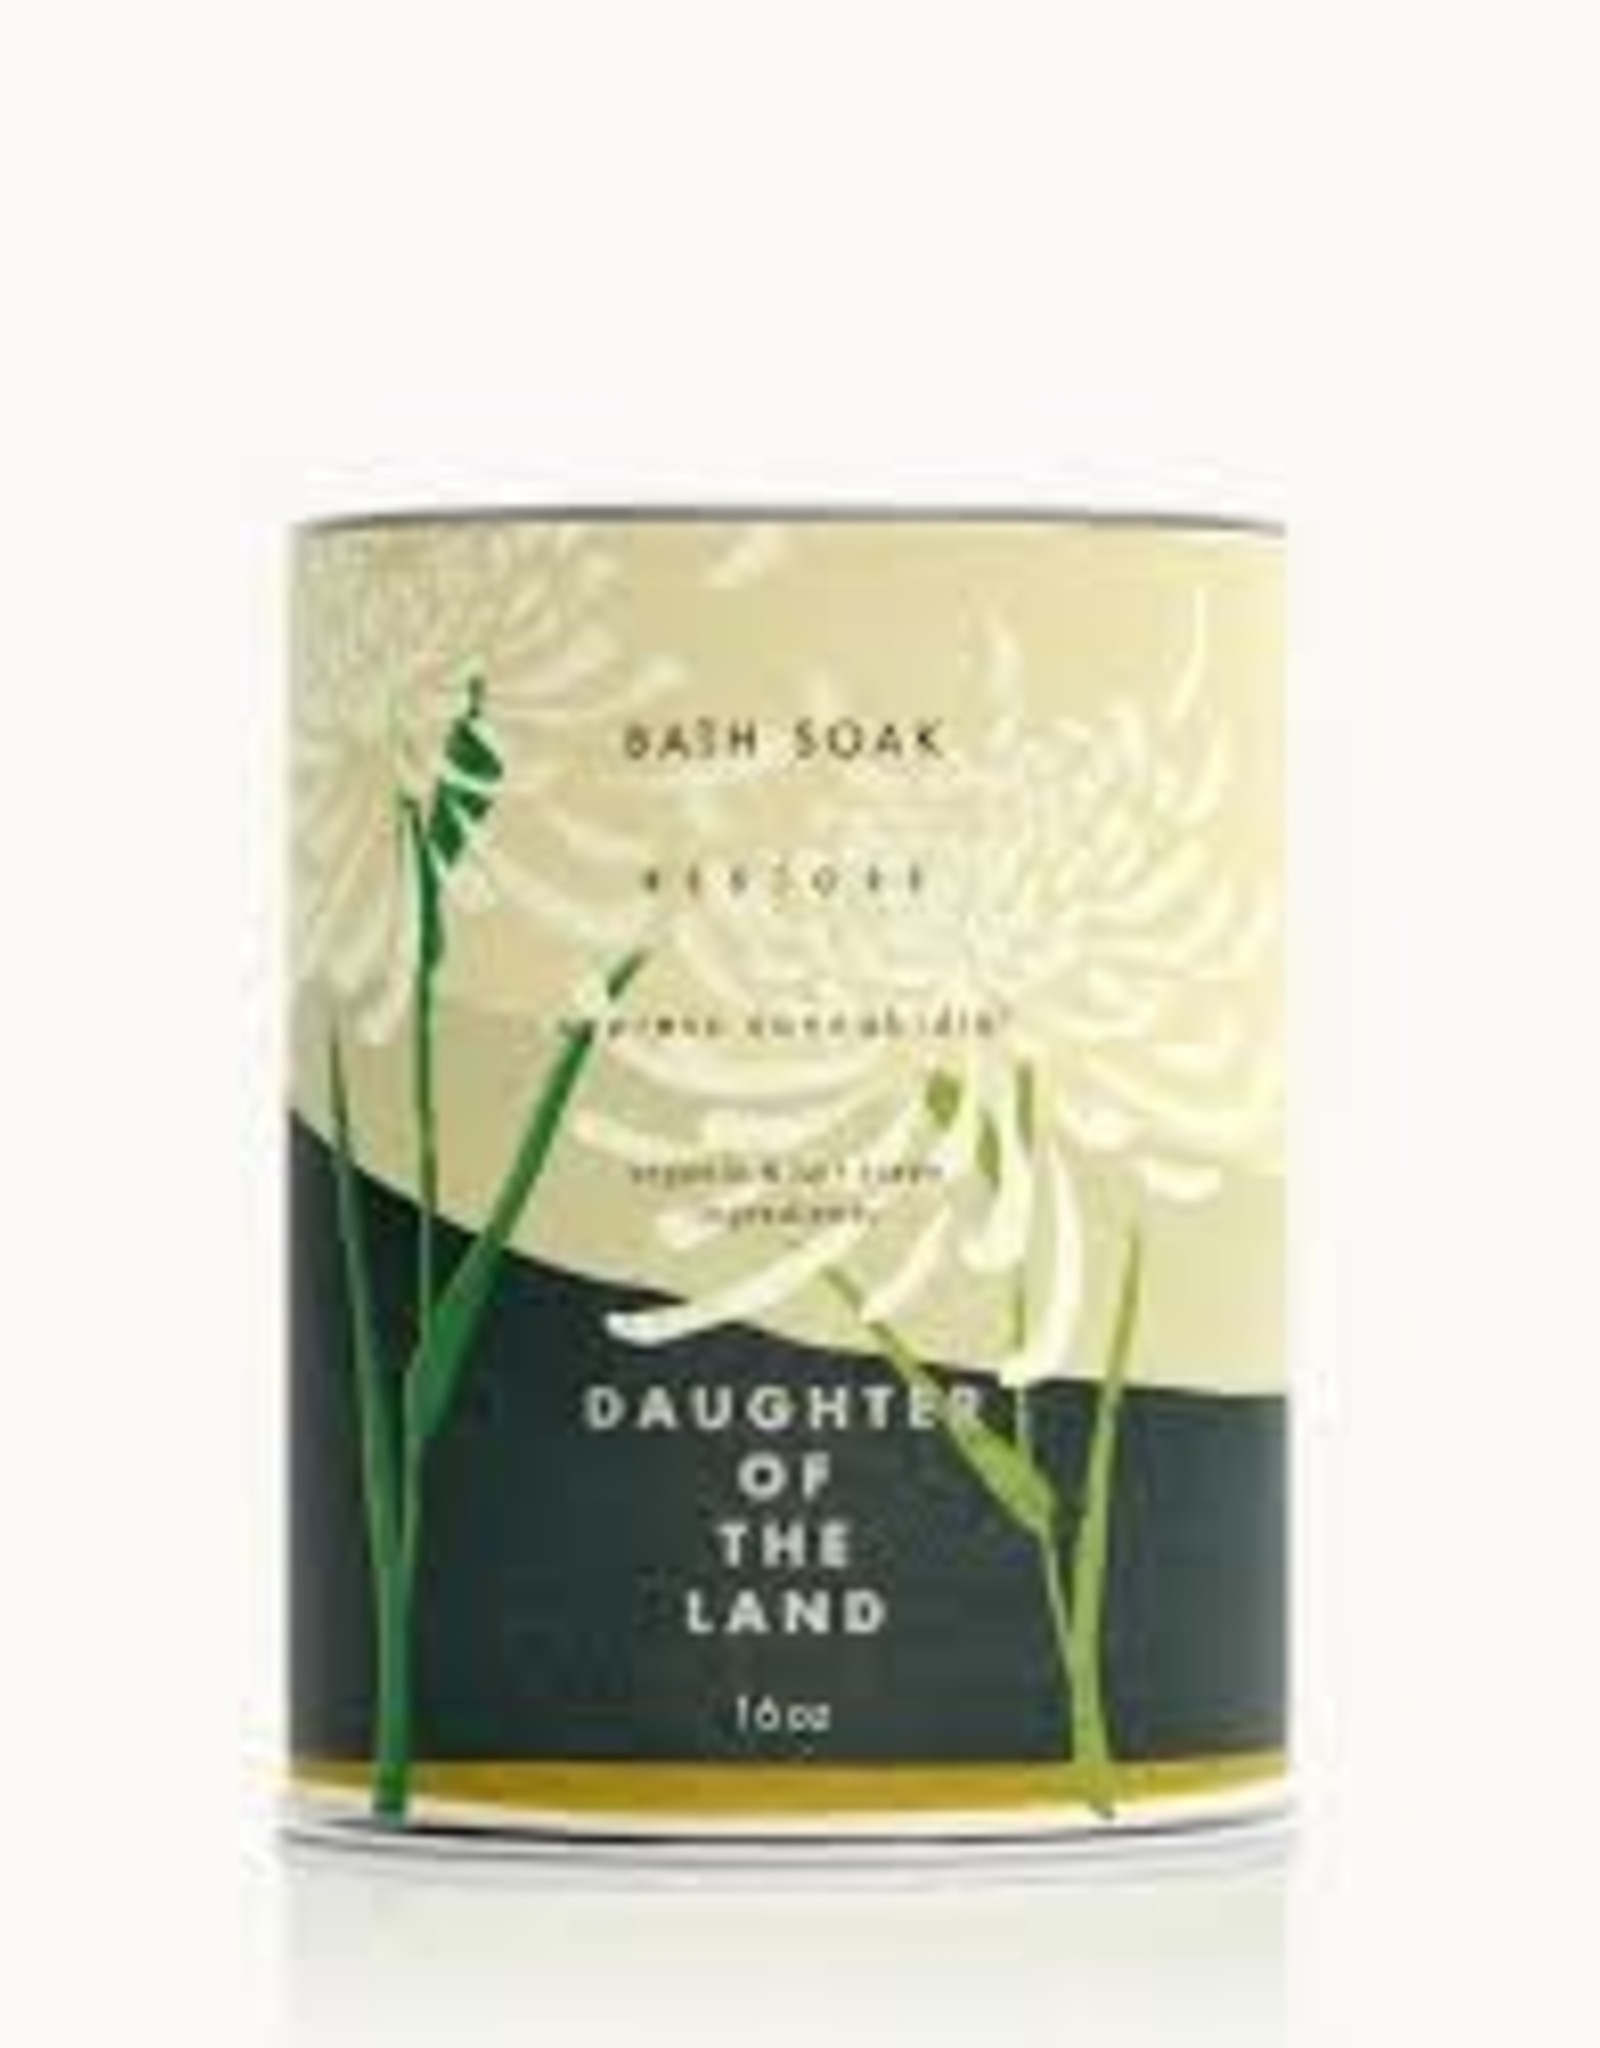 Daughter of the Land CBD Bath Soak